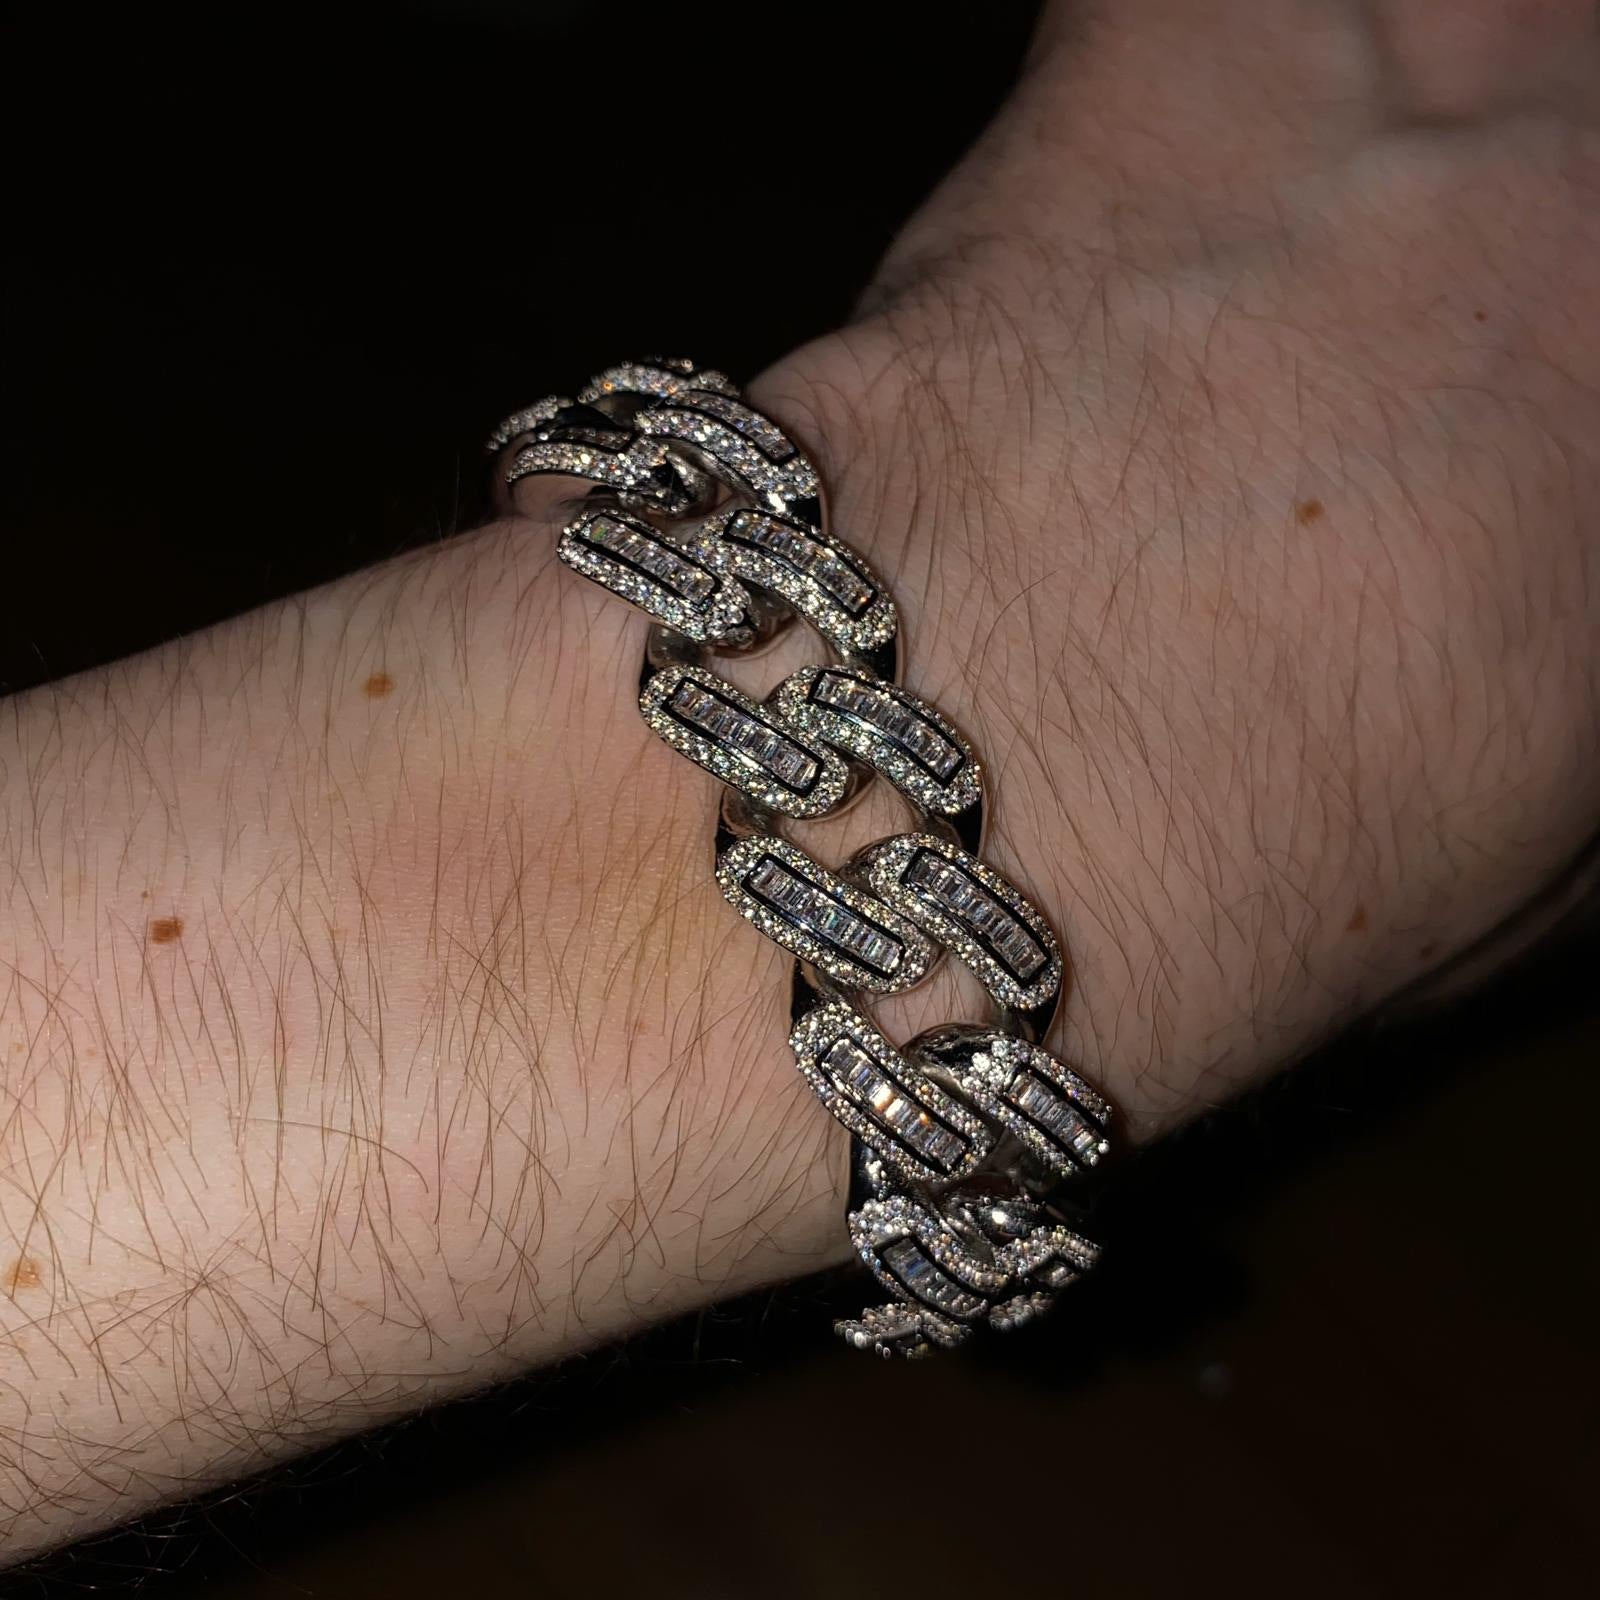 19mm ICED Baguette Bracelet in White Gold